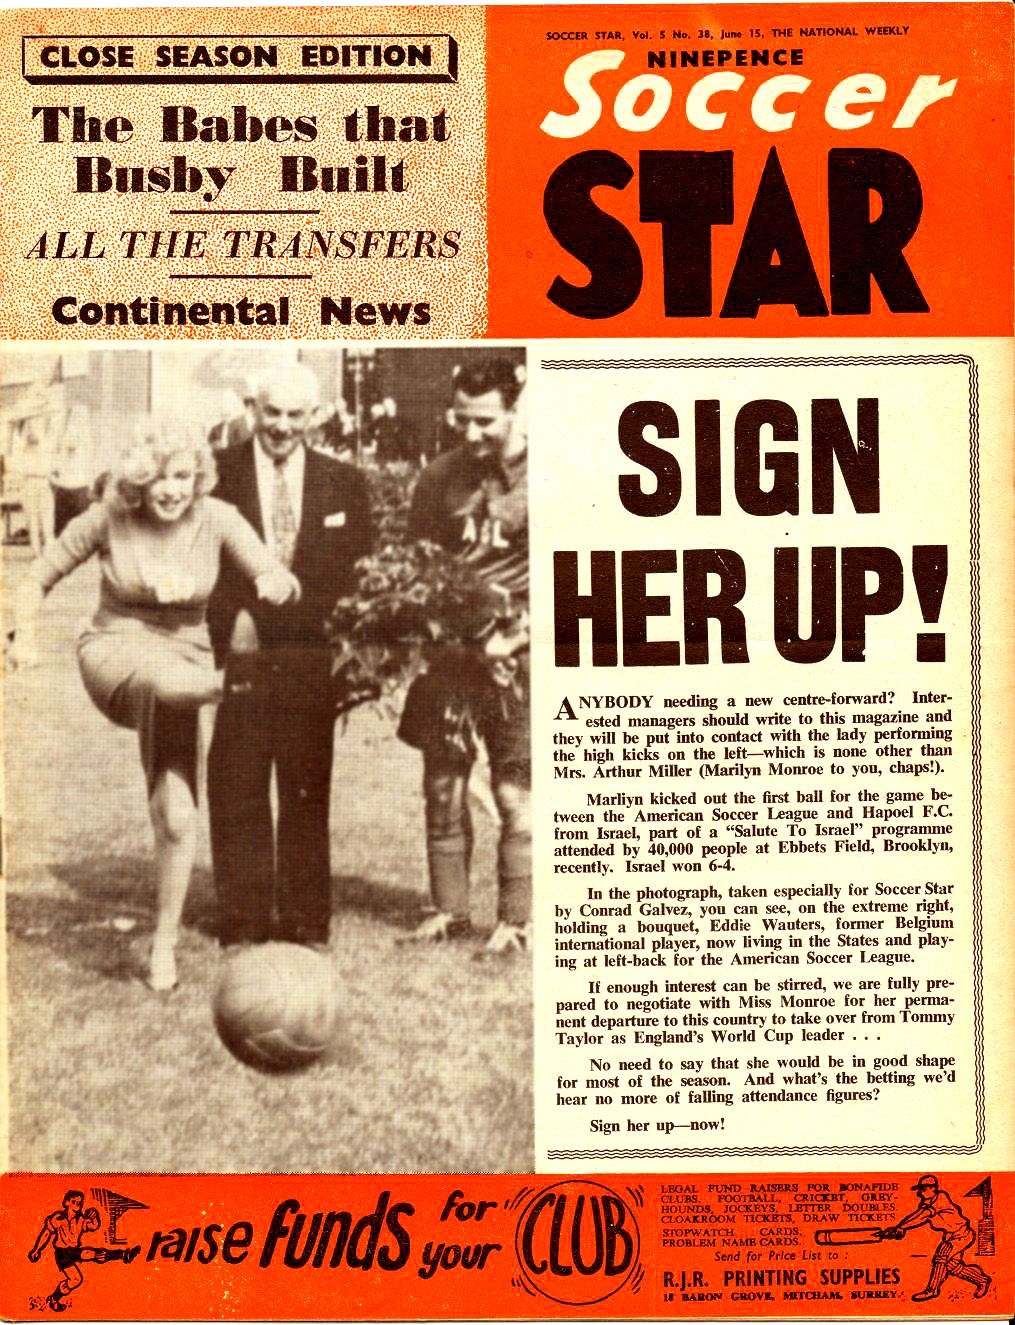 """Marilyn in a photo at a charity soccer game at Ebbets Field Stadium on the cover of """"Soccer Star"""" magazine, United Kingdom, June 1957."""